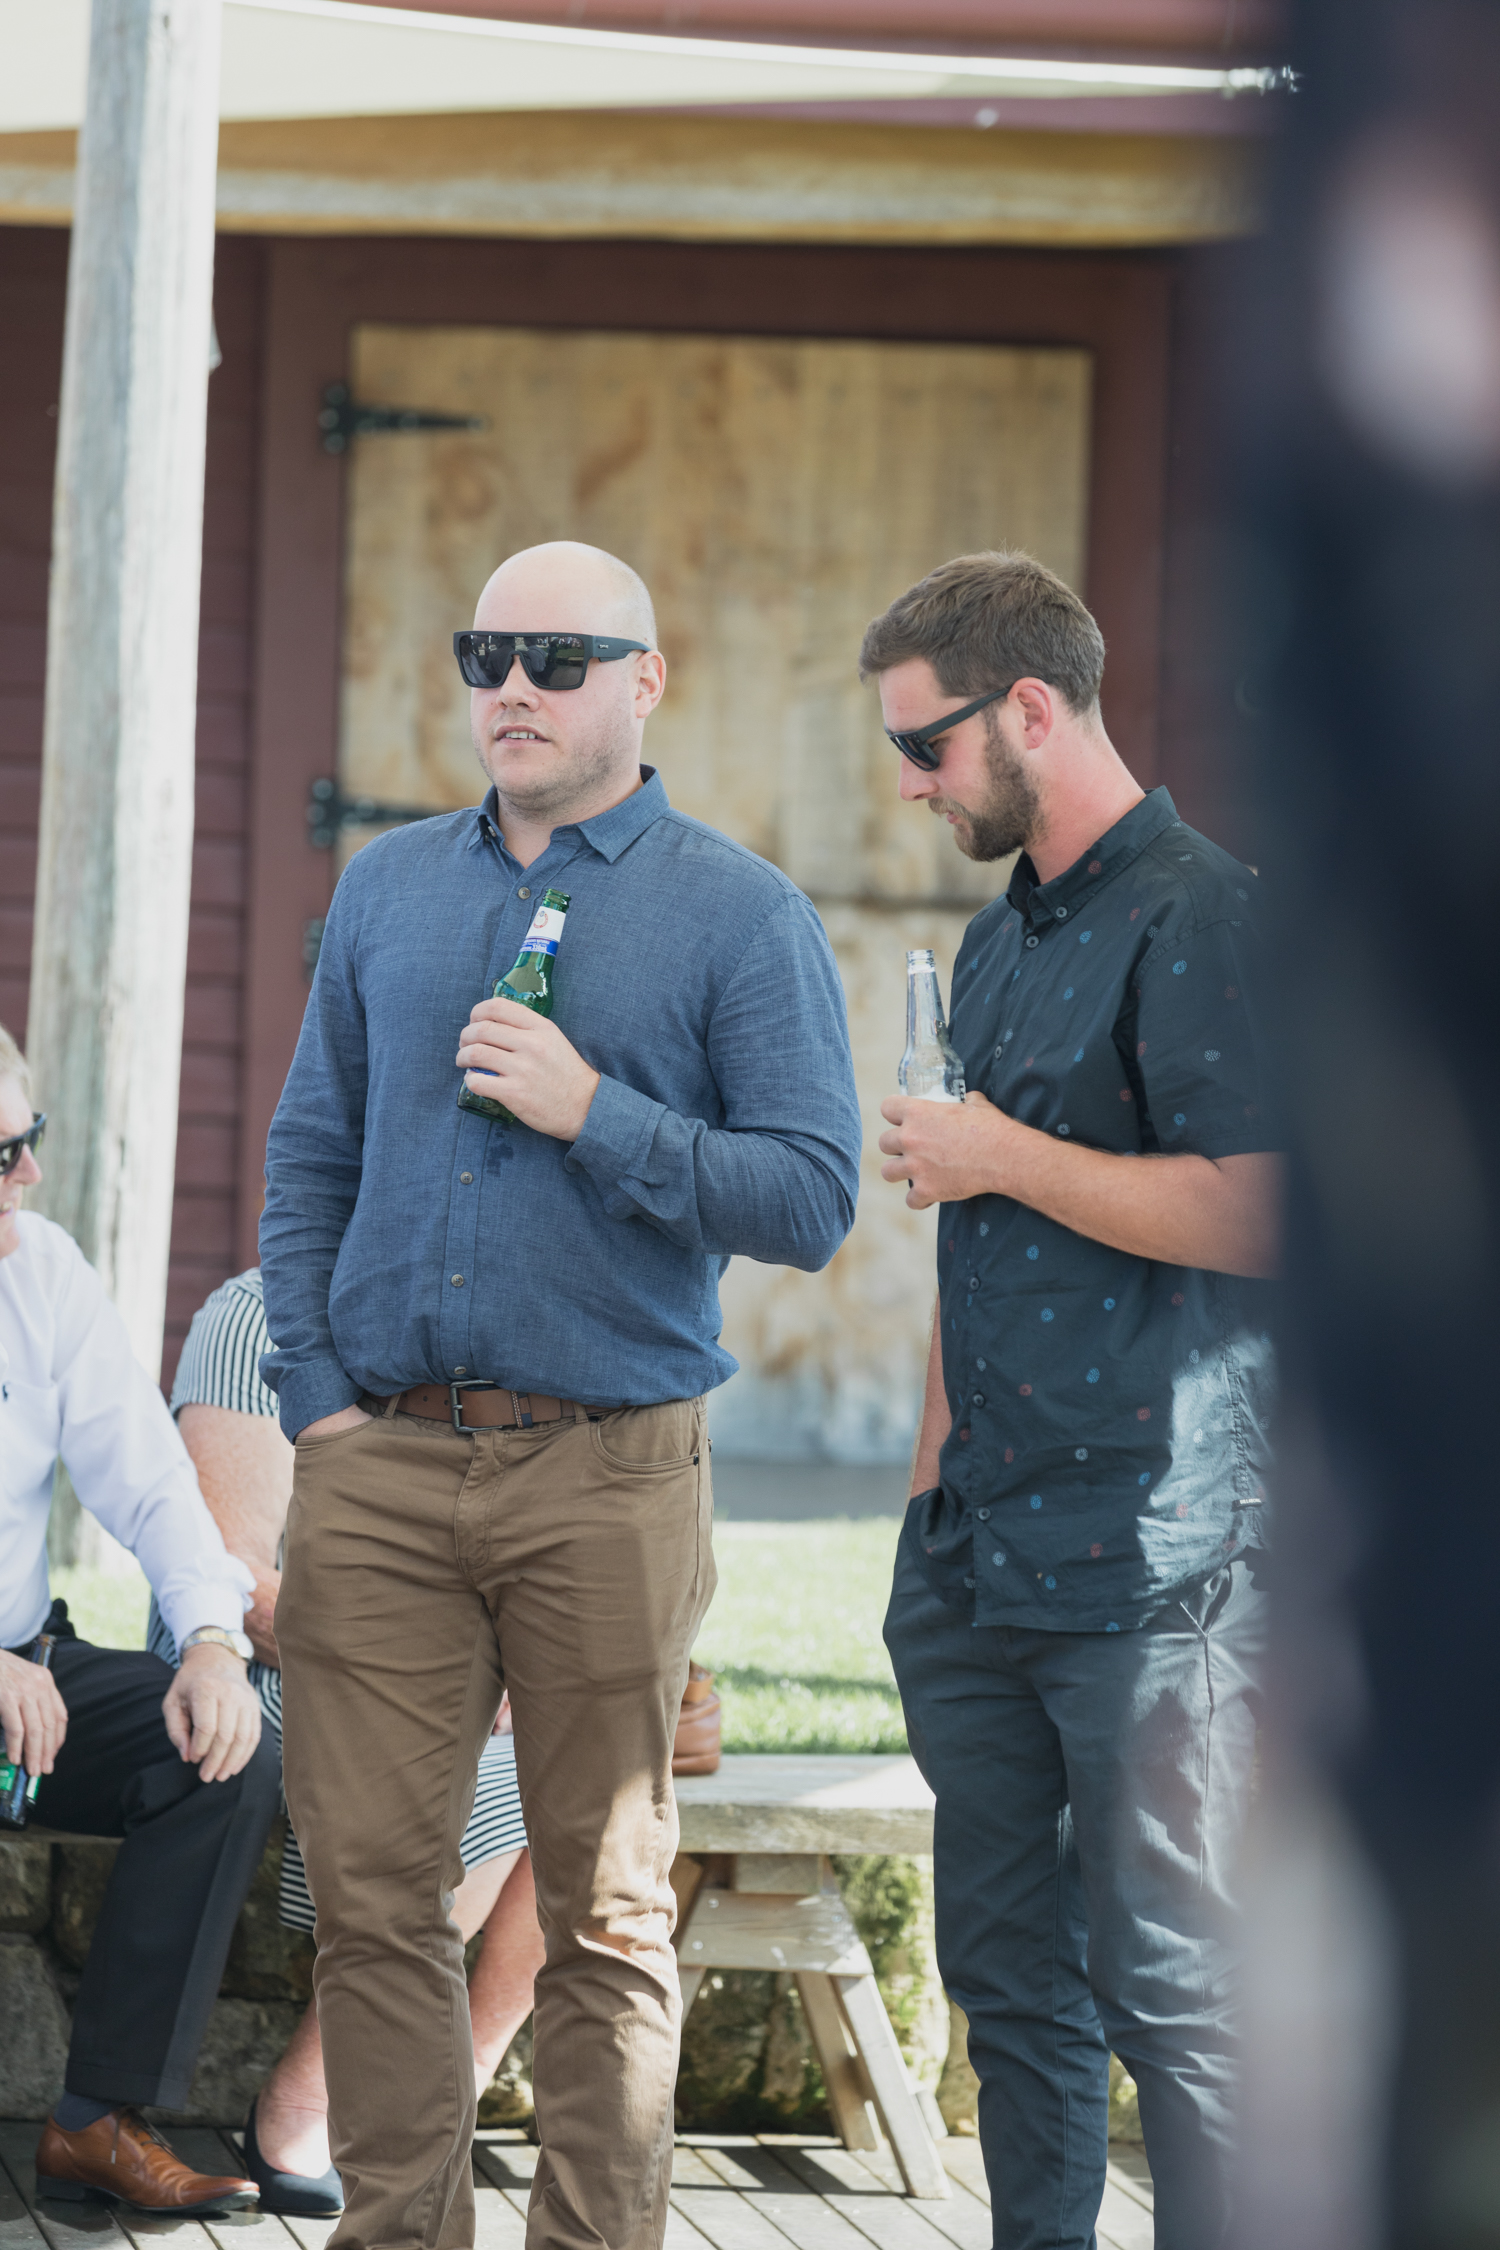 wedding-at-the-red-barn-new-zealand-wedding-photographer-guests-greeting-eachother.jpg